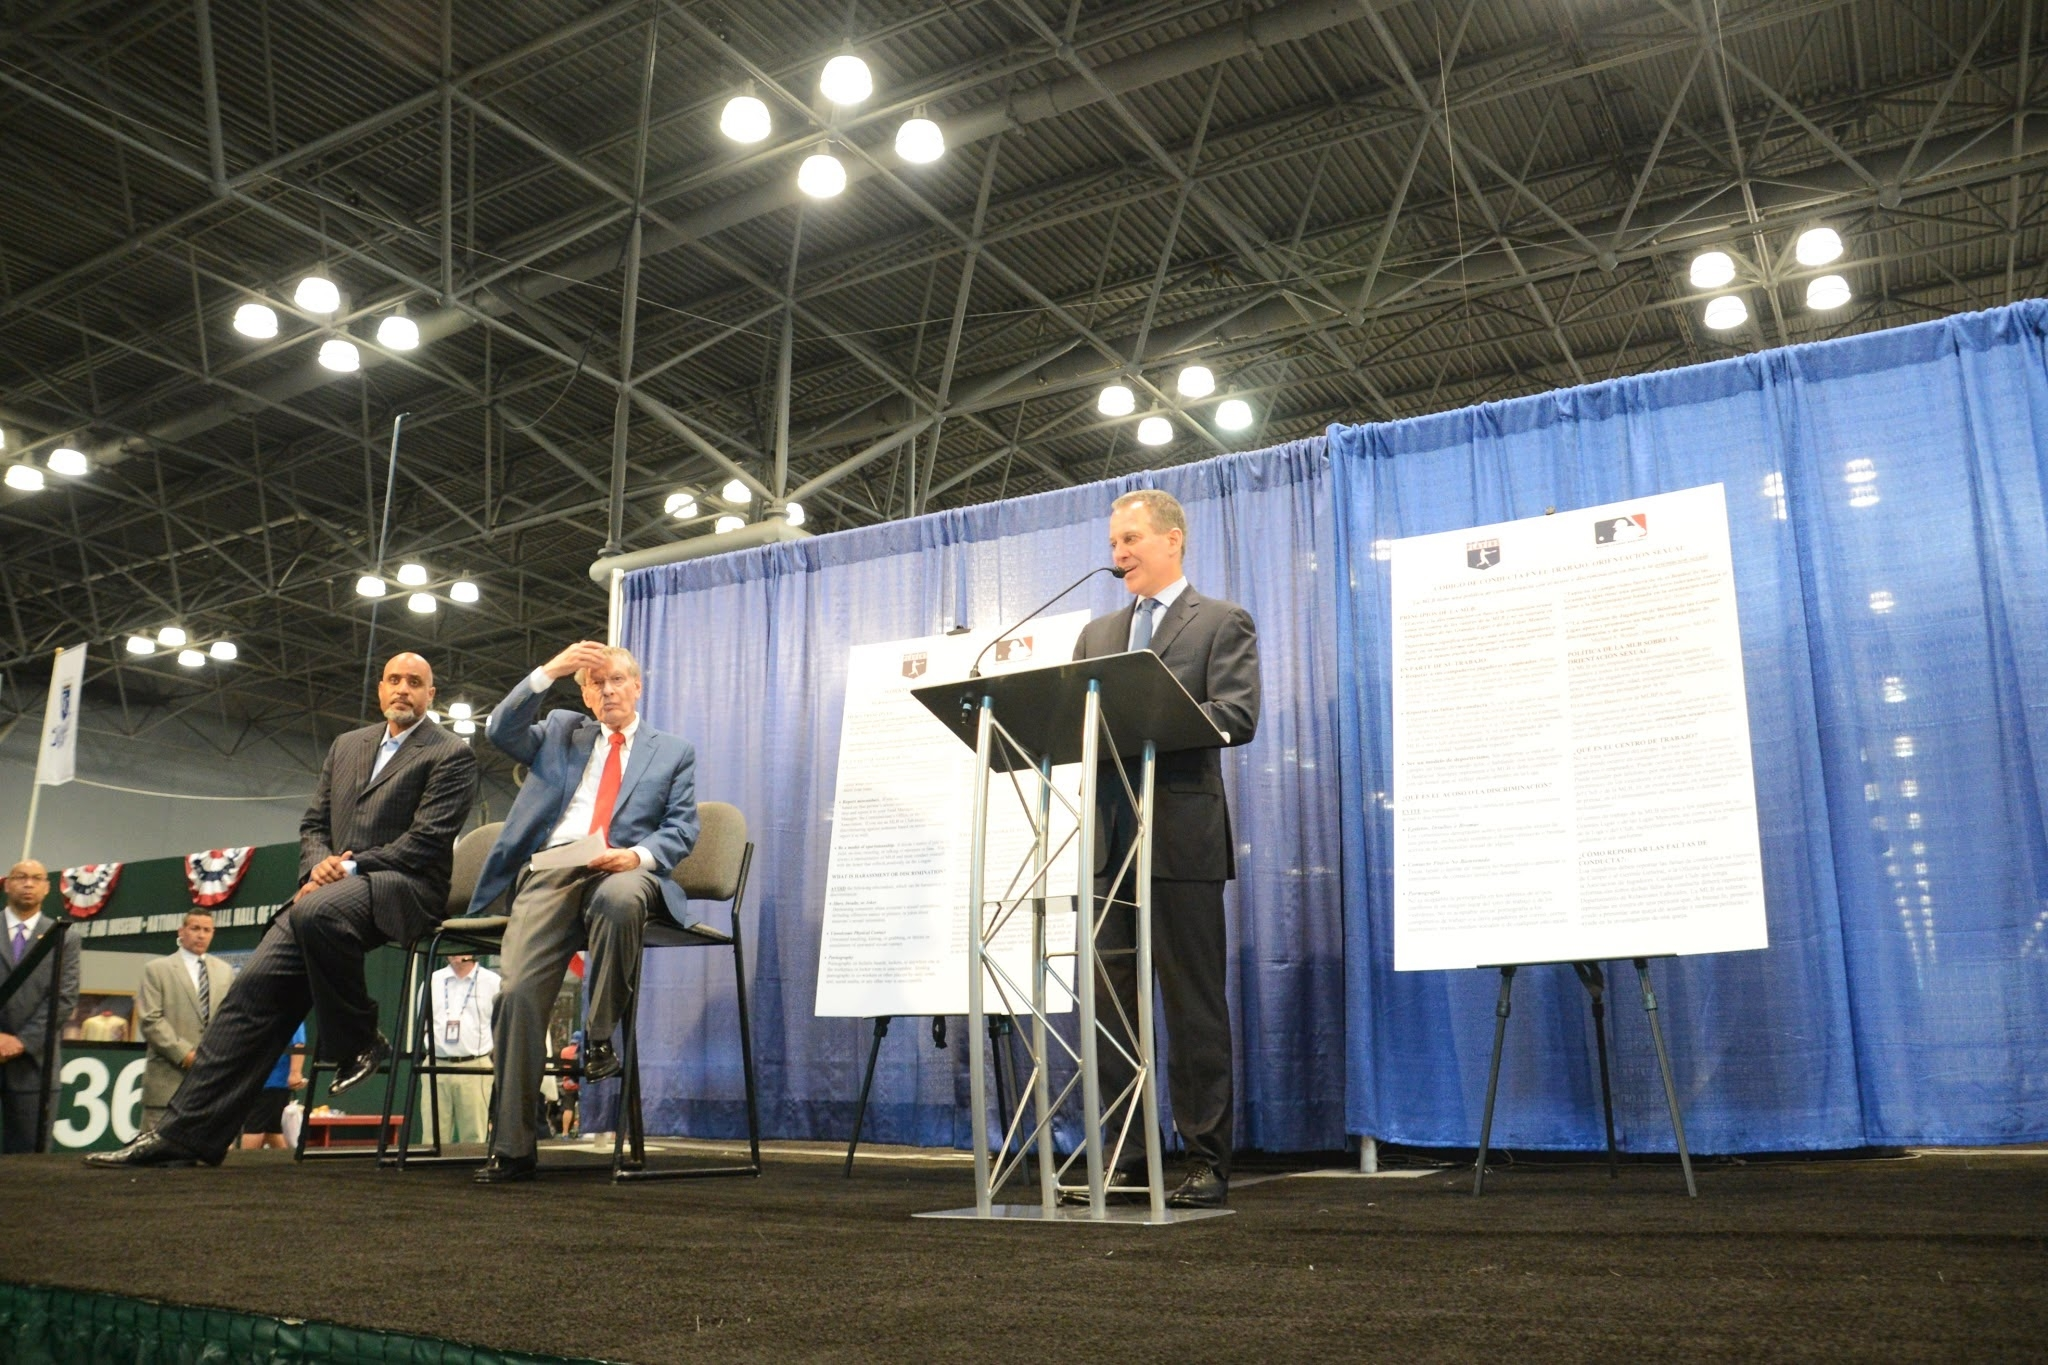 A.G. Schneiderman, MLB Commissioner Selig & the MLBPA ...